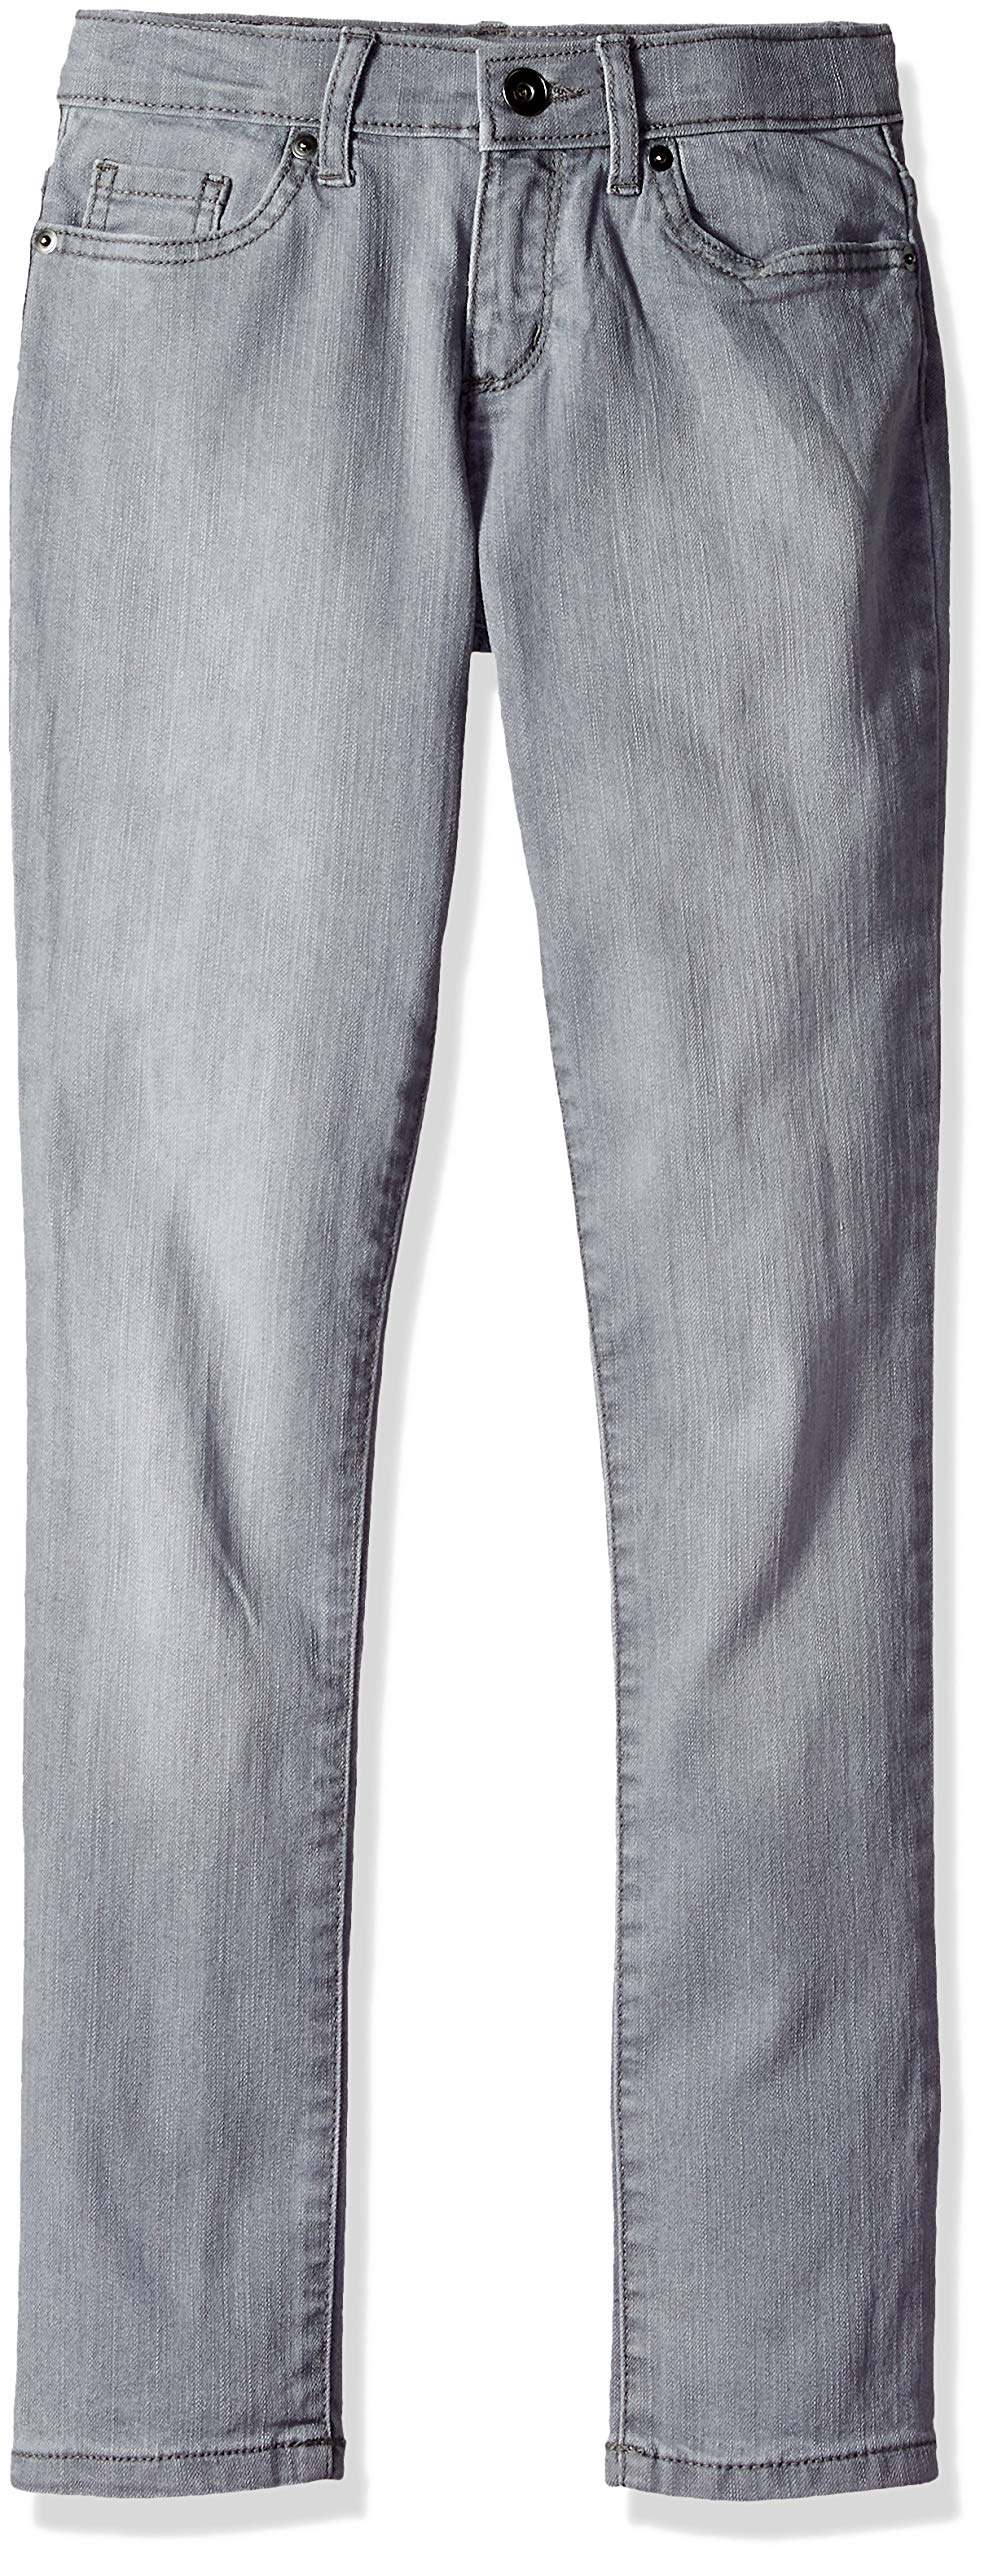 The Children's Place Big Girls' Skinny Jeans, GRANITEWSH, 8 Plus by The Children's Place